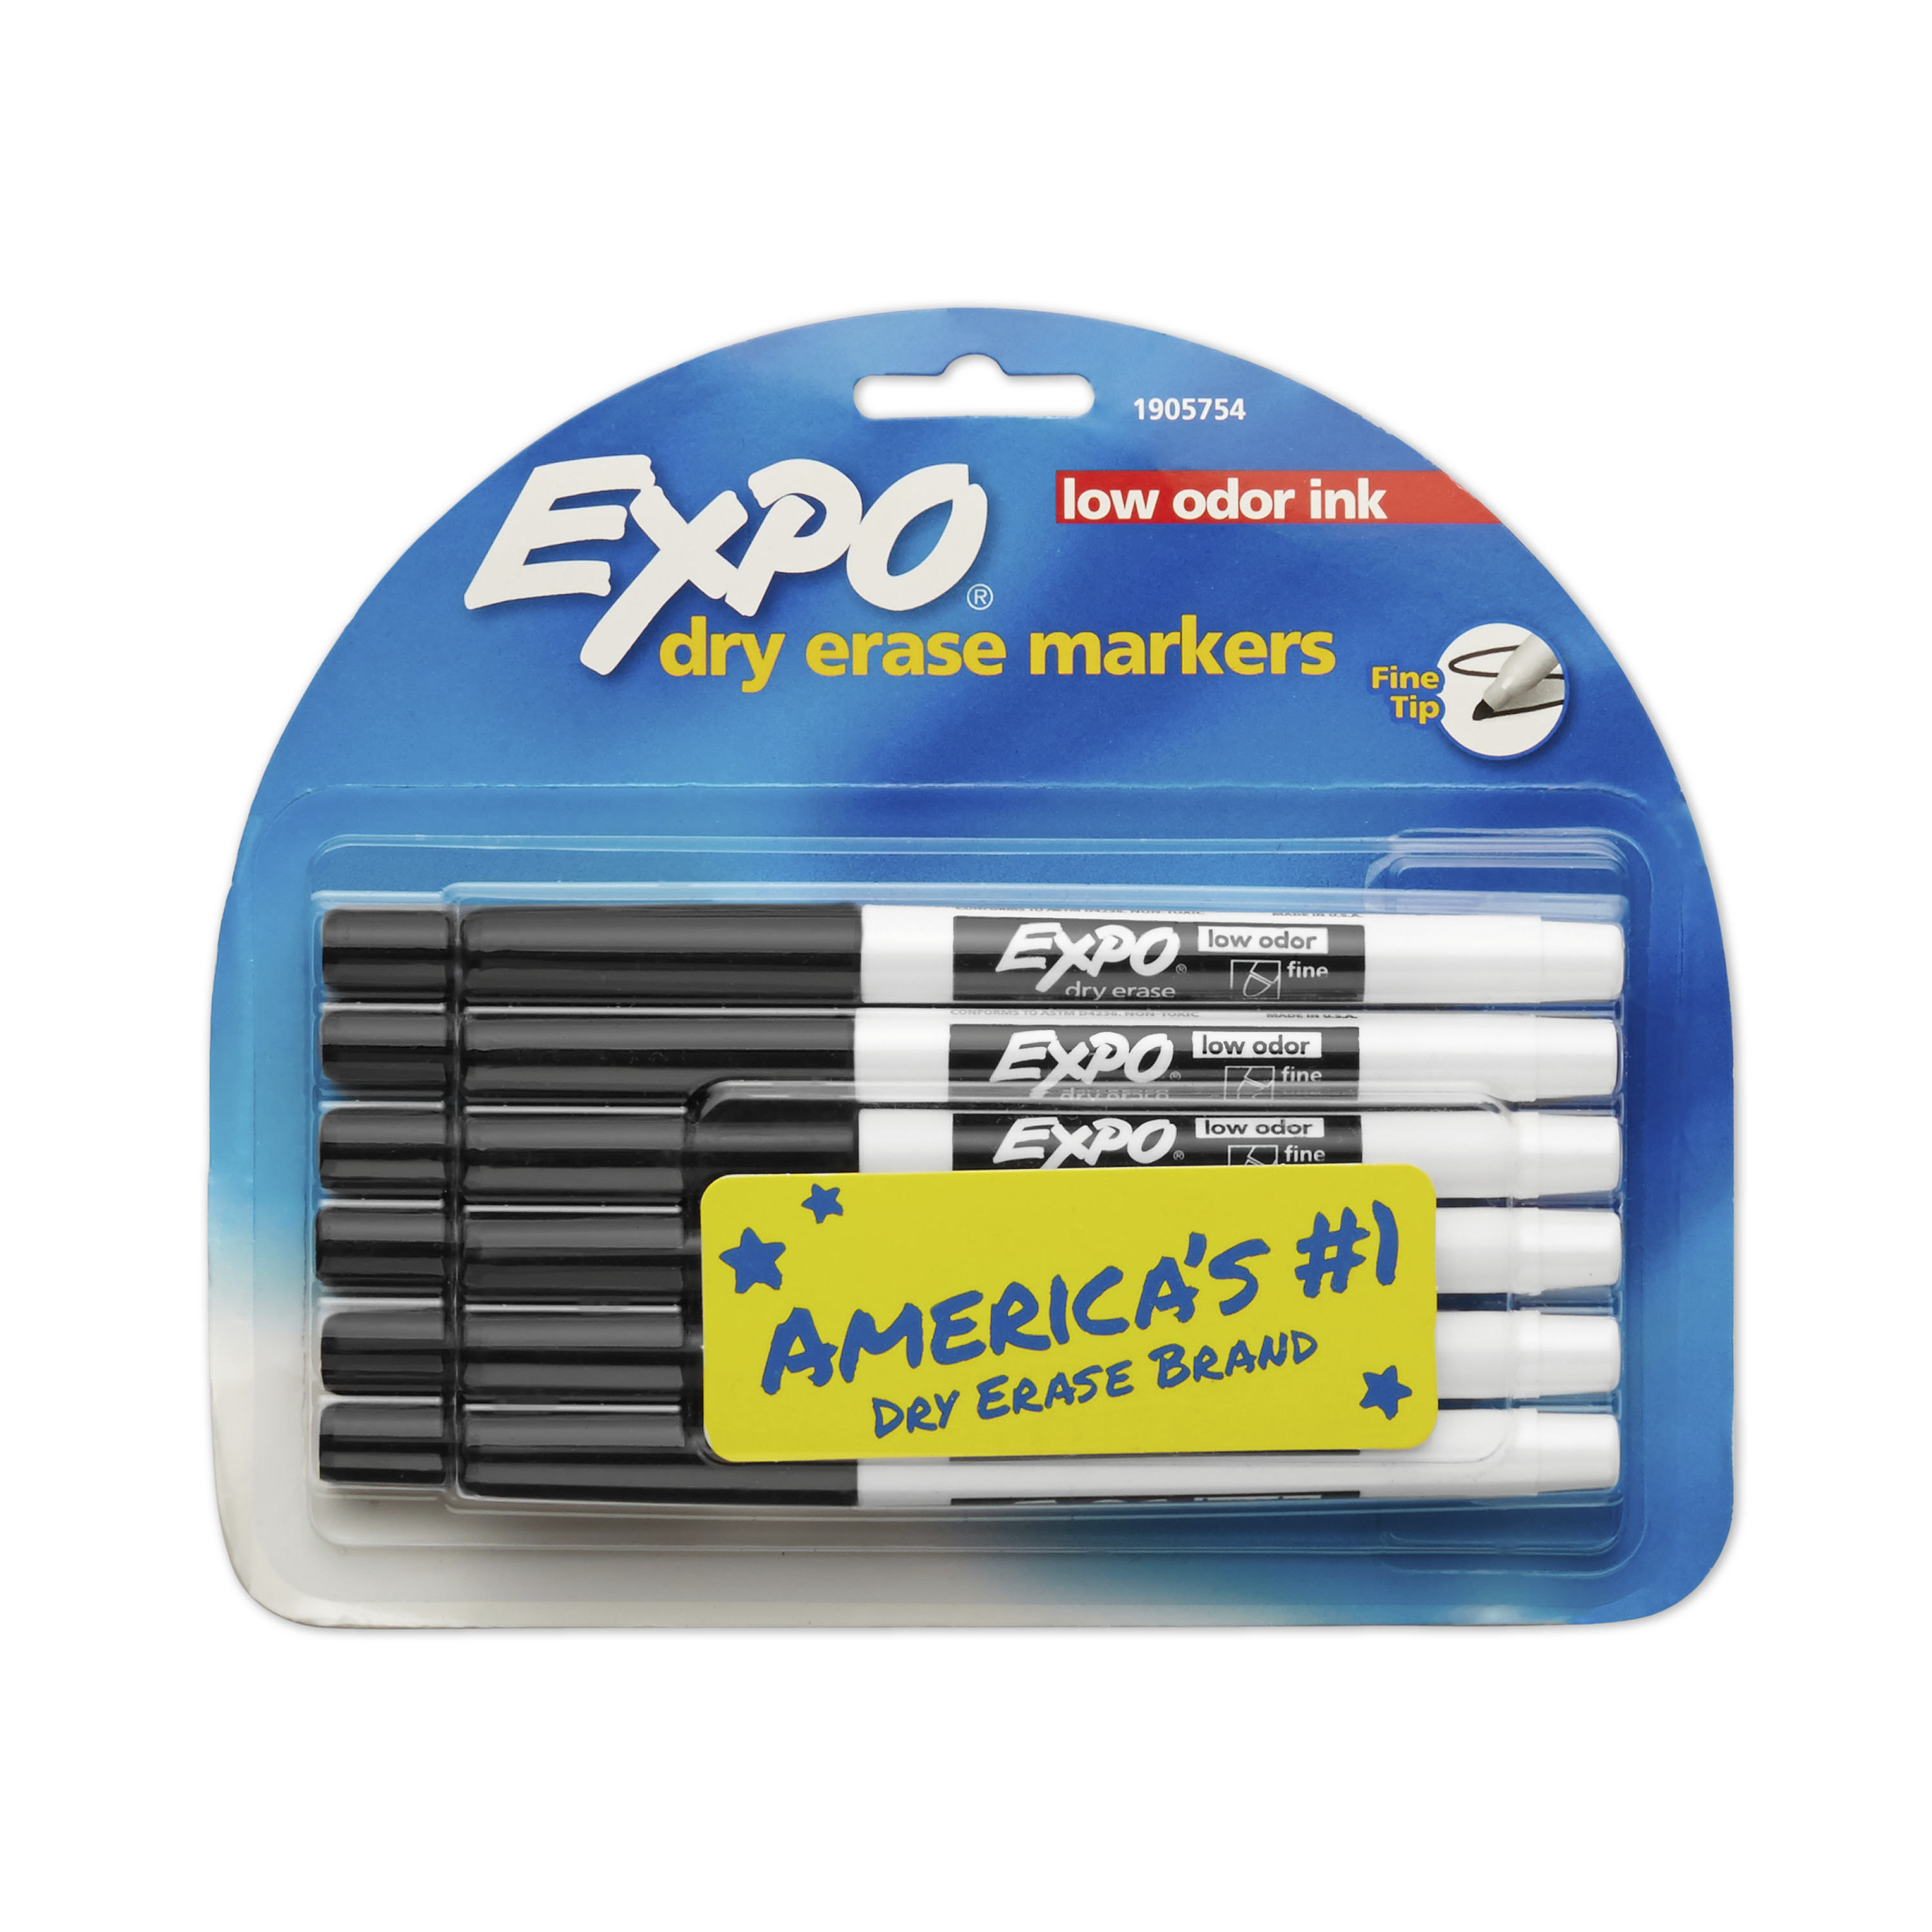 EXPO Low Odor Dry Erase Markers, Fine Tip, Black, 12 Count